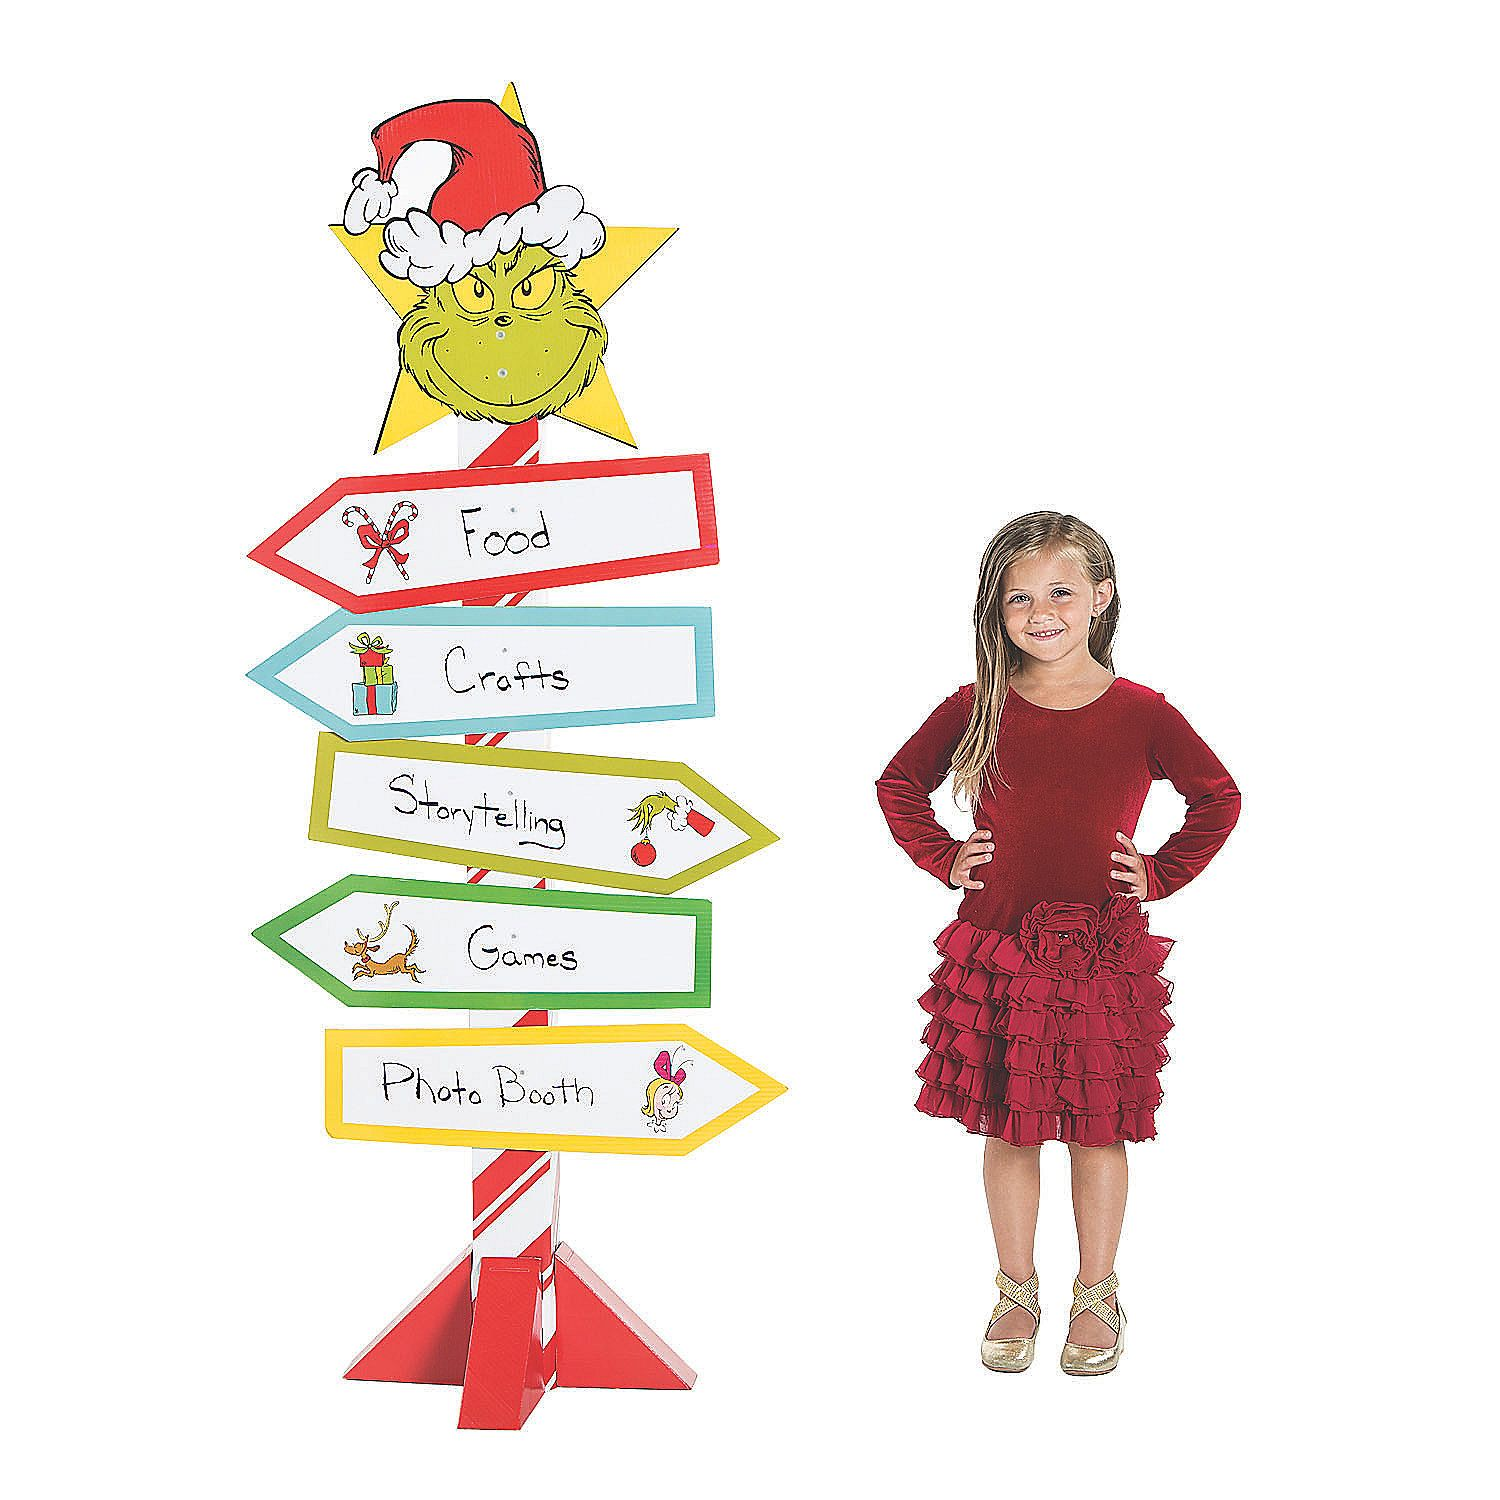 Dr Seuss The Grinch Directional Sign Cardboard Stand Up Holiday Party Kids Whoville Christmas Whoville Christmas Decorations